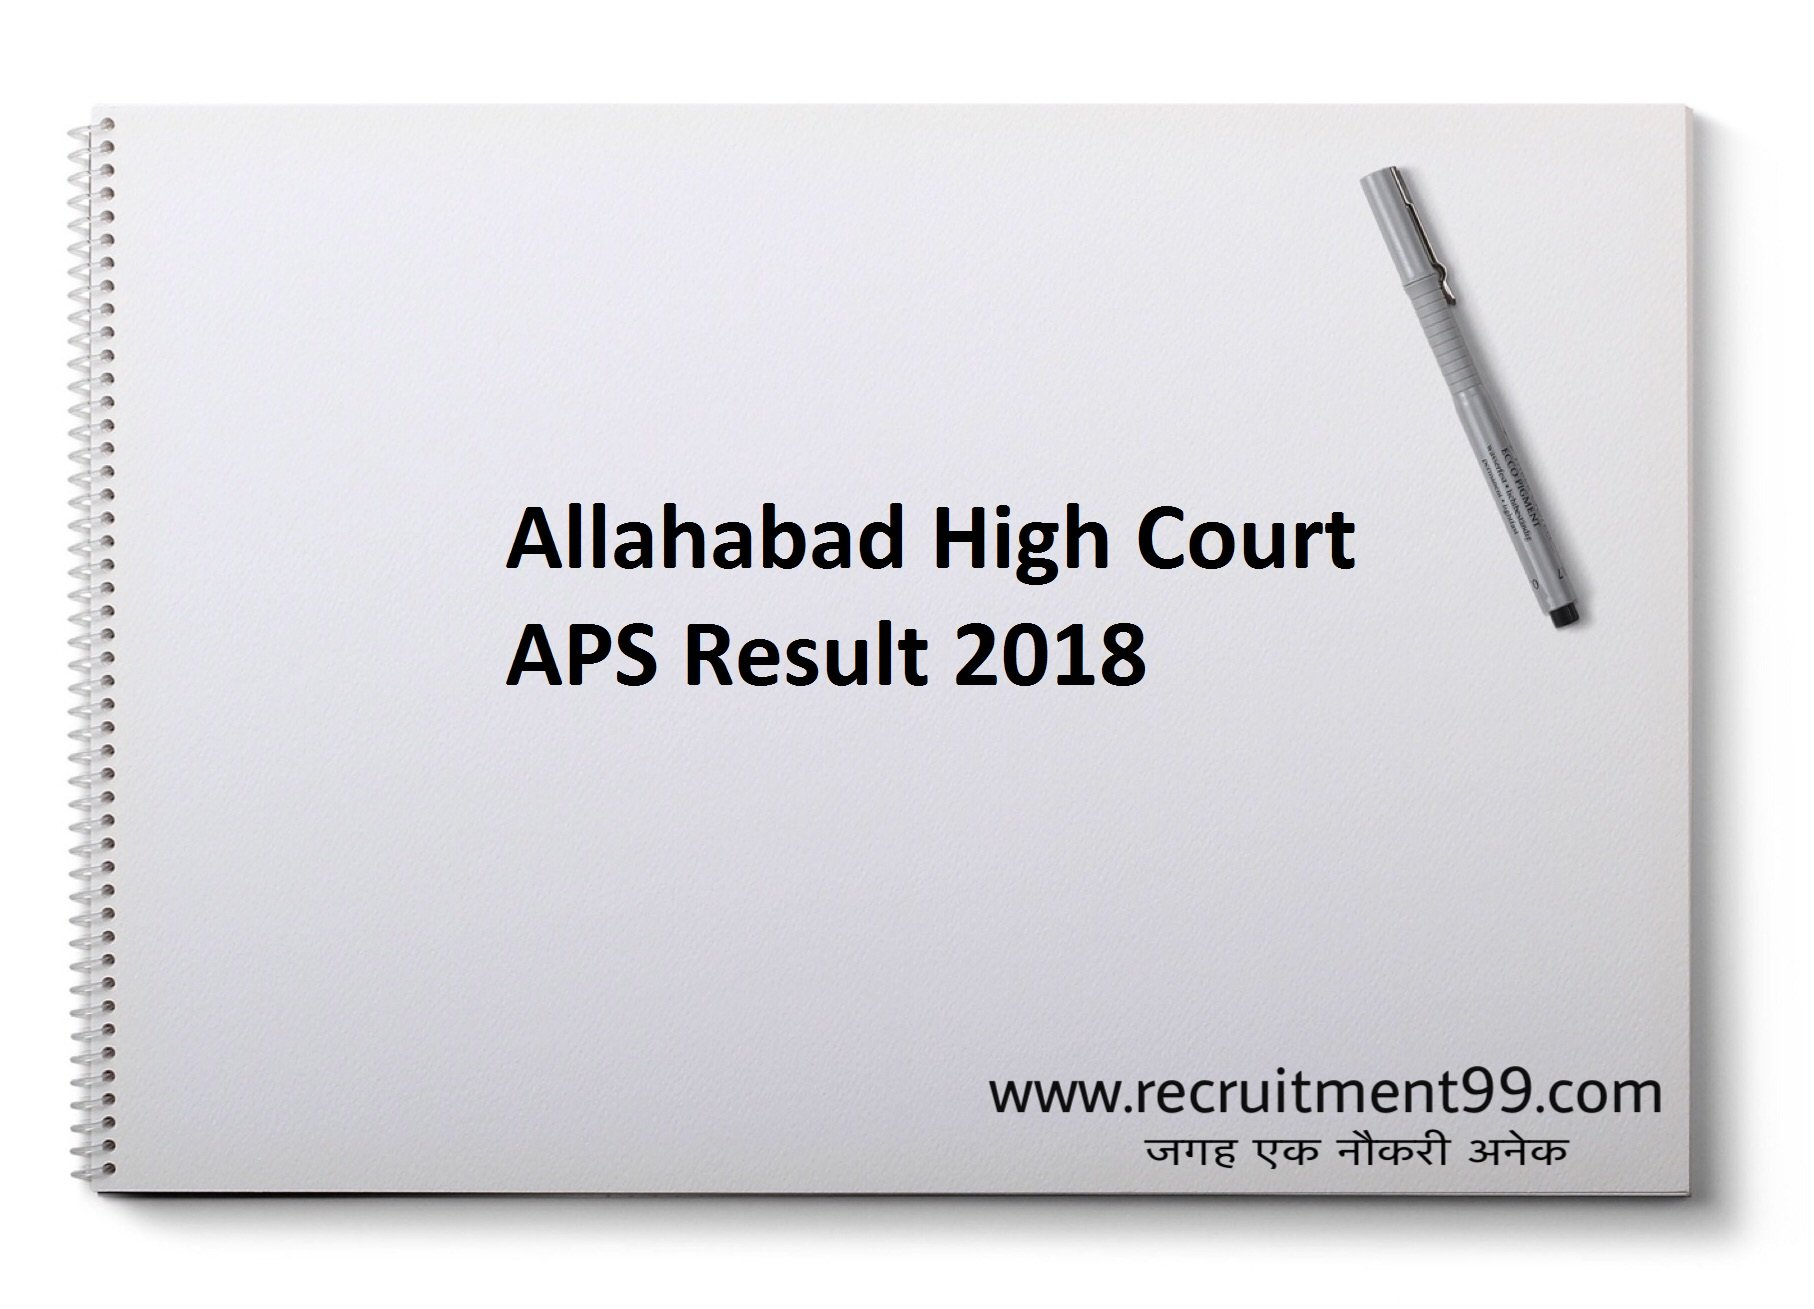 Allahabad high court APS Recruitment Admit Card Result 2018